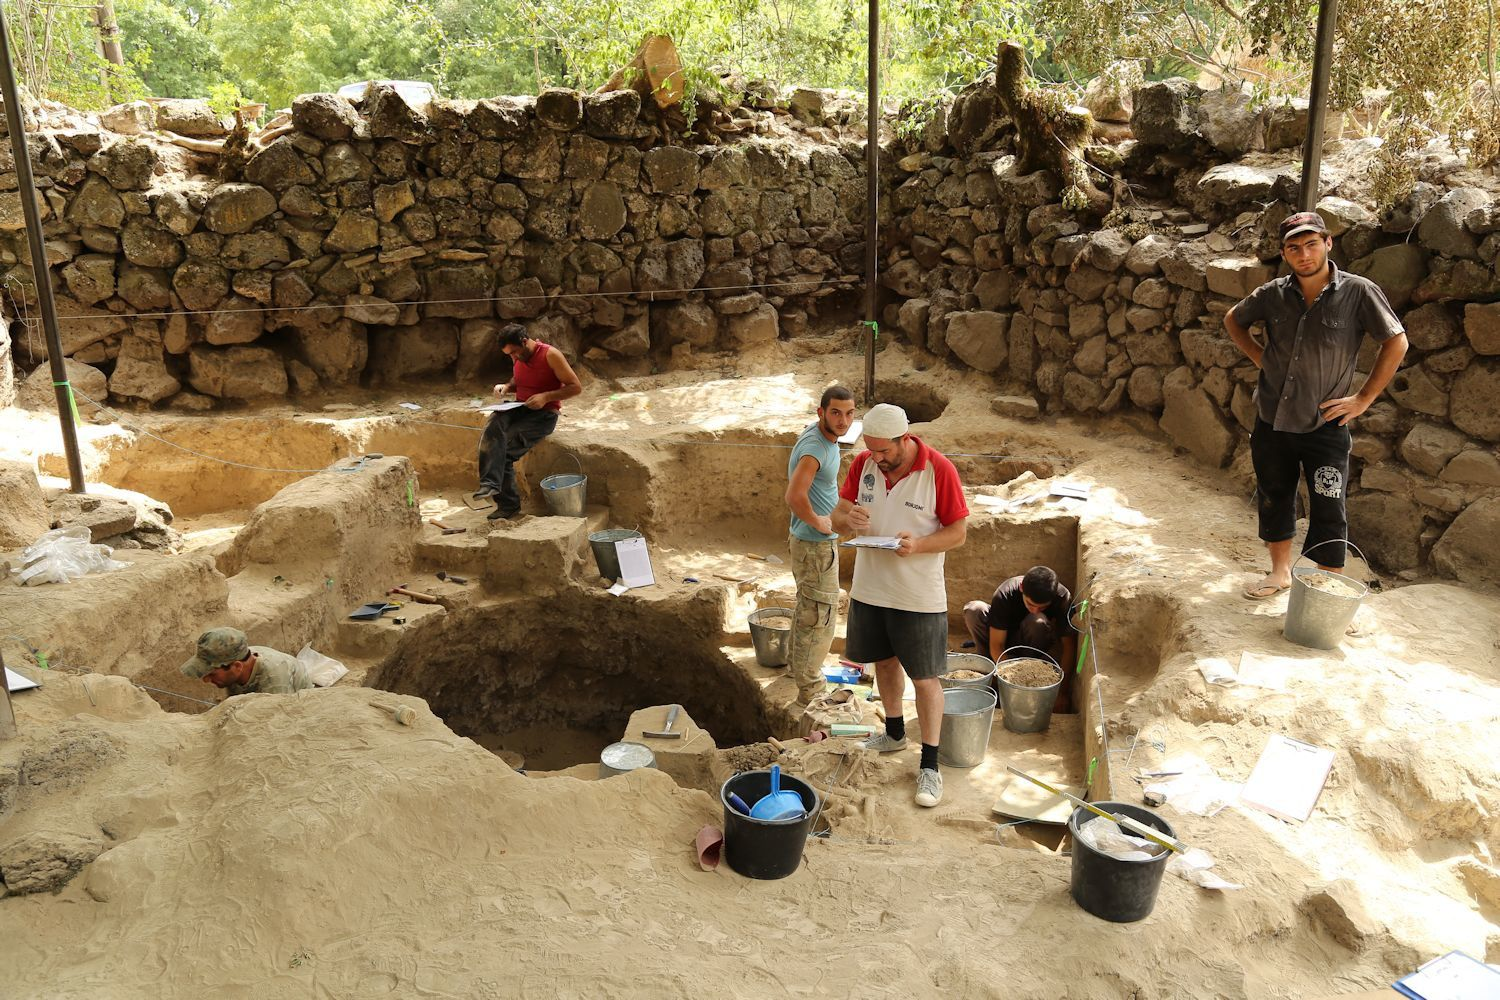 Archeologists  excavating the site in Dmanisi Museum-Reserve